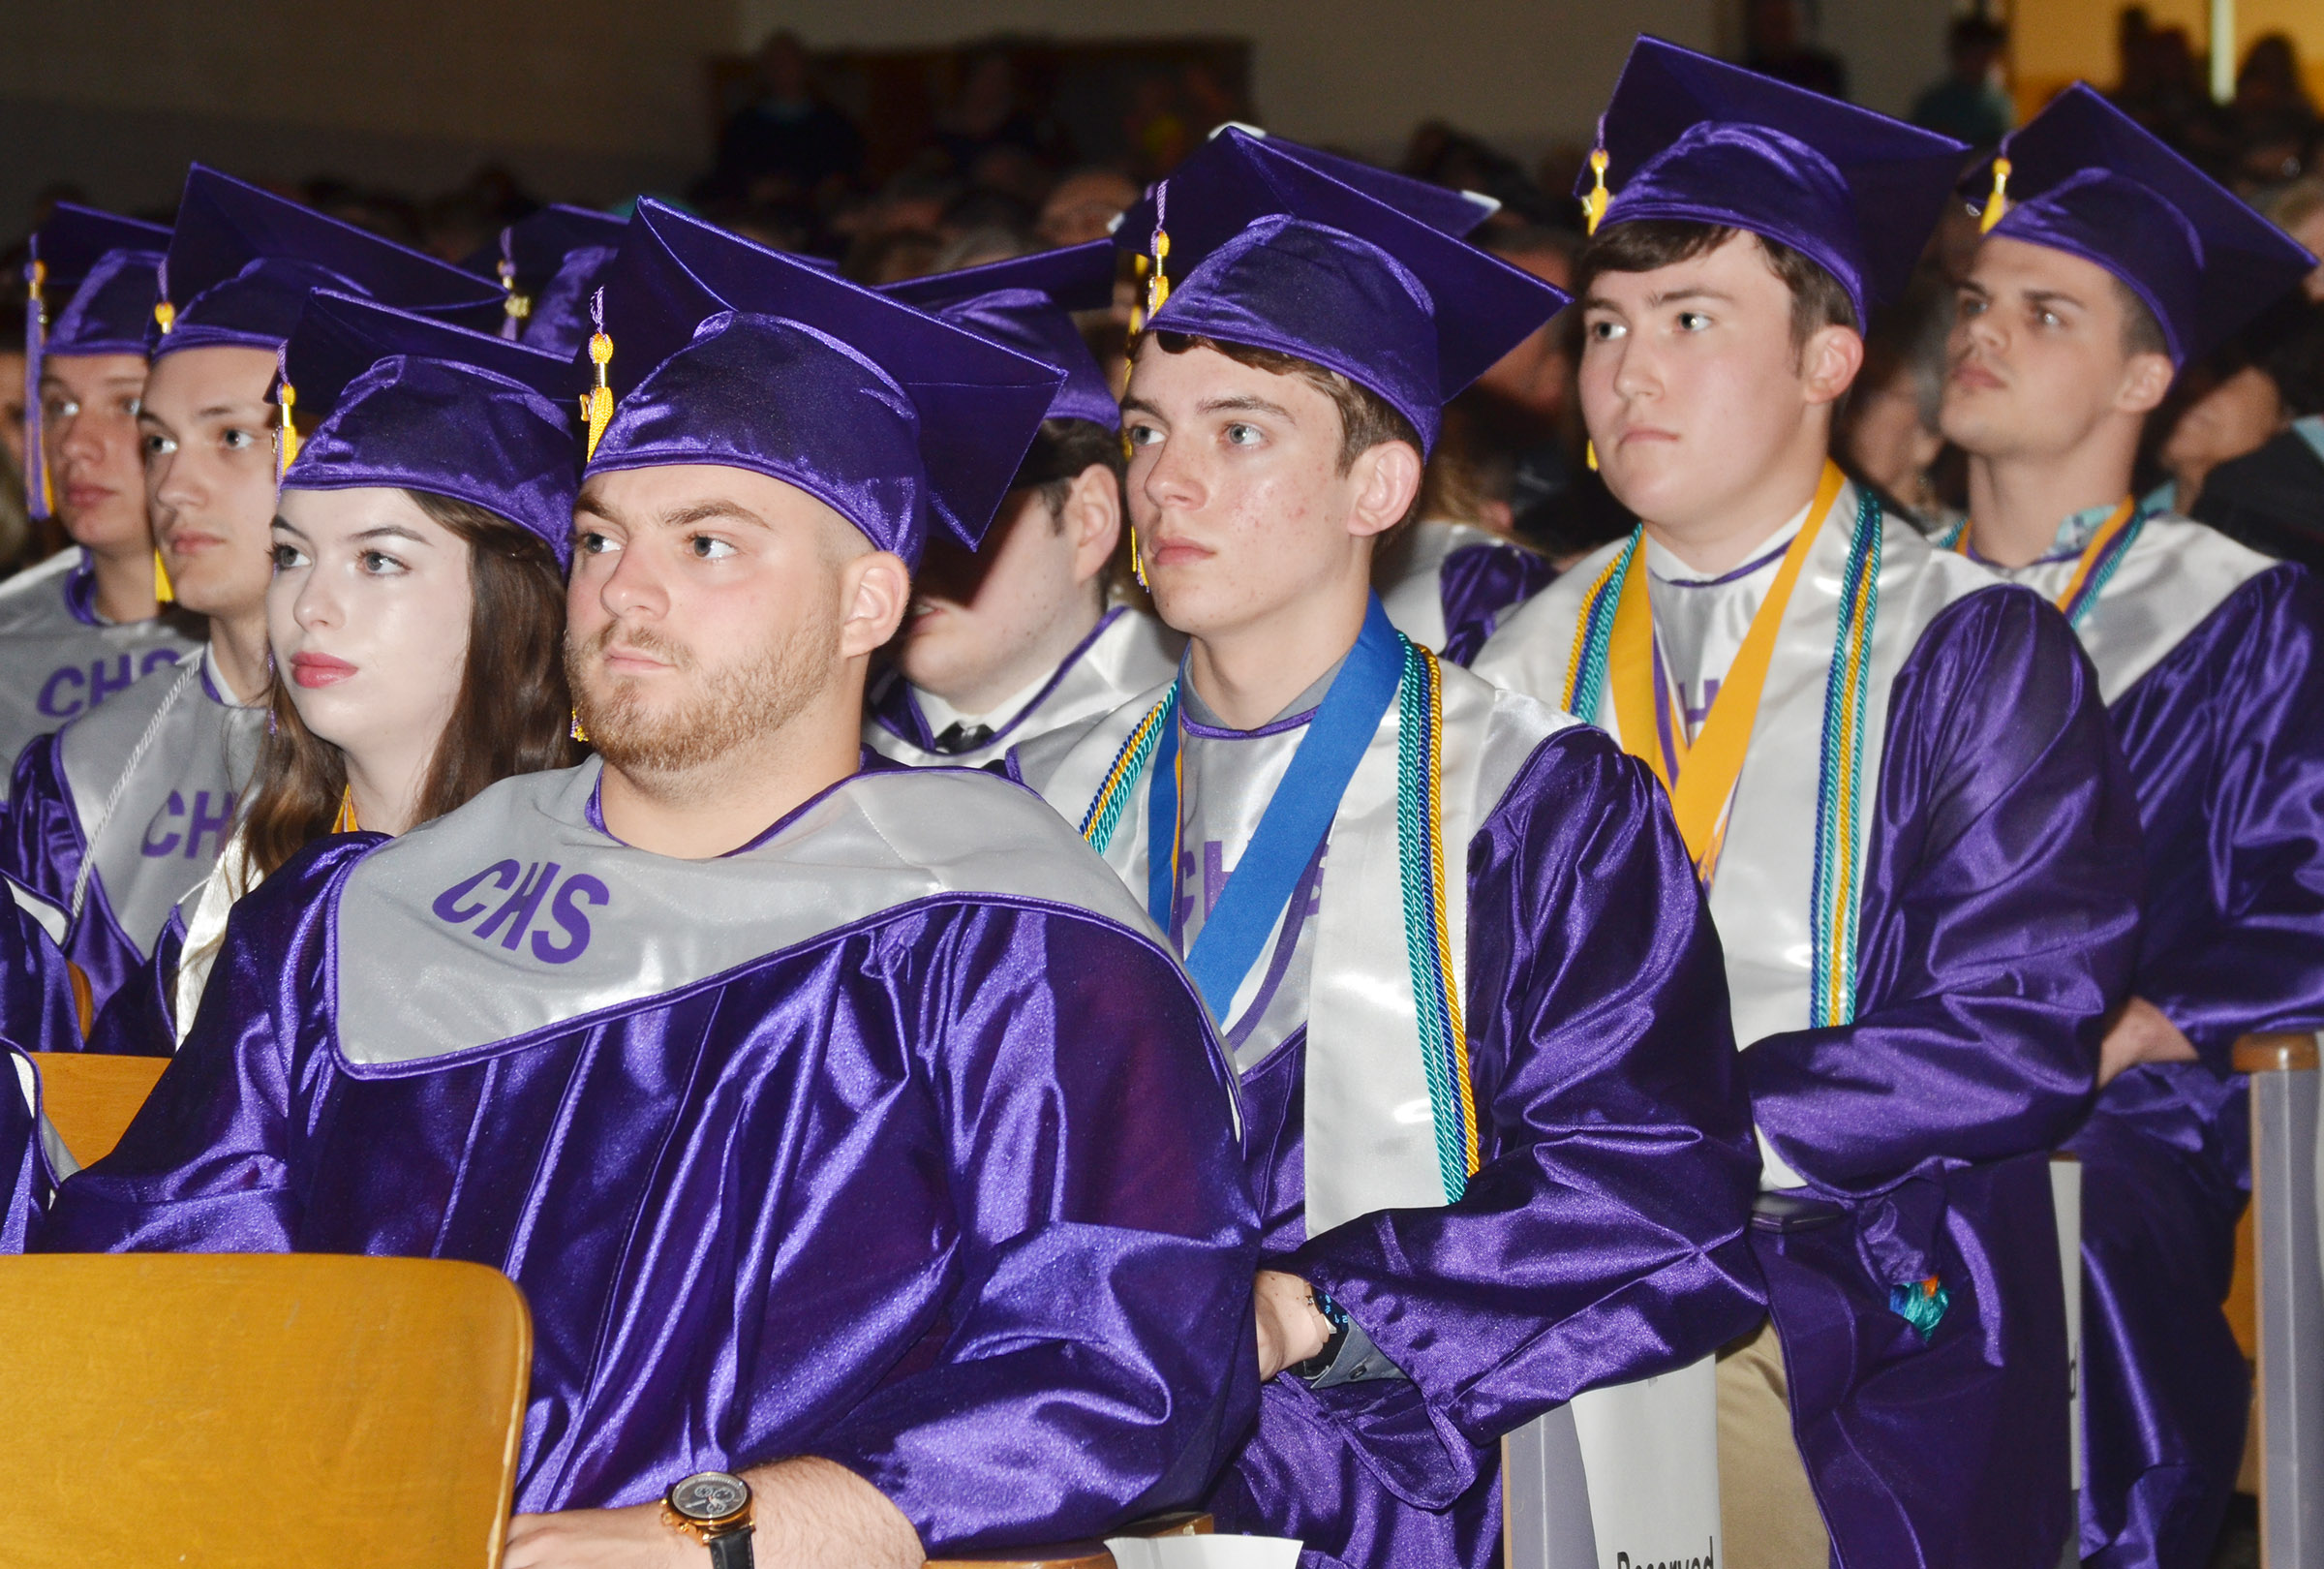 CHS seniors listen as Campbellsville Independent Schools Superintendent Mike Deaton addresses them.